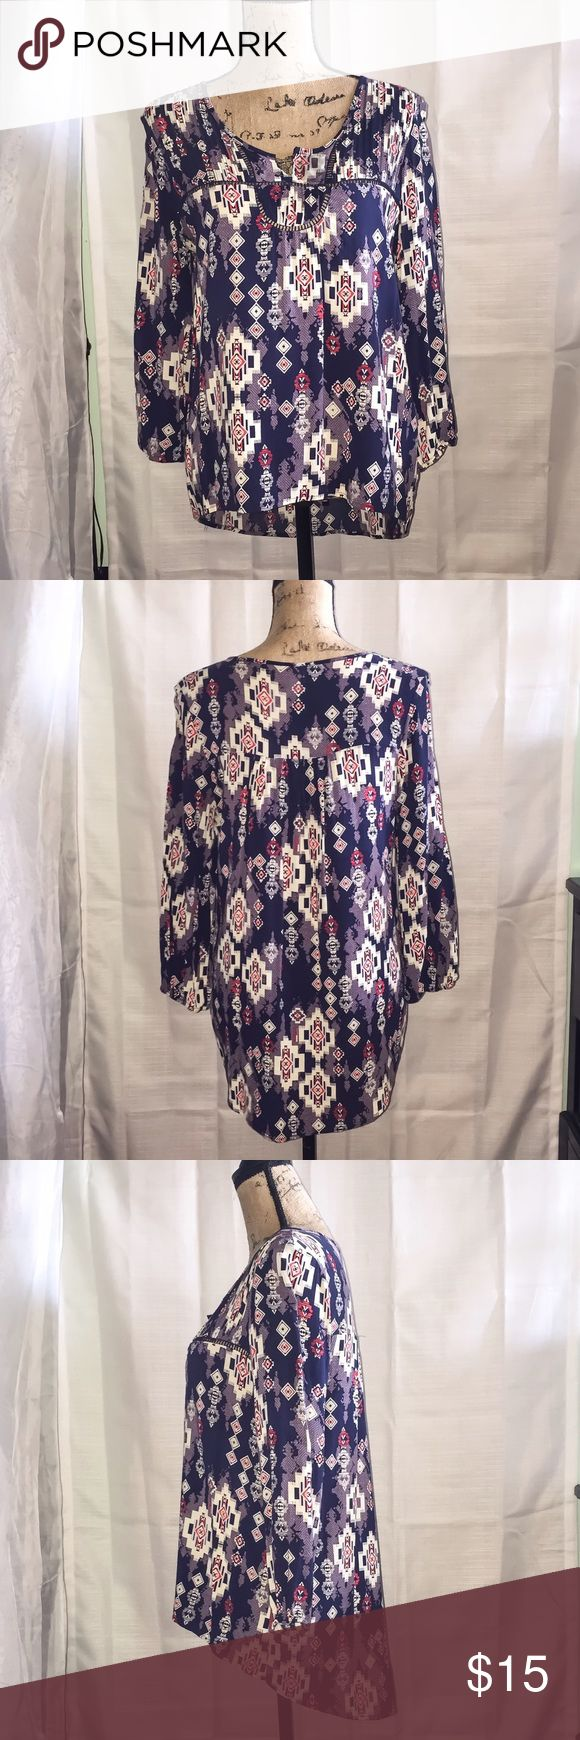 Tribal Blouse, Geometric Blouse This top is so comfy and flattering on! I am downsizing otherwise I would keep this. Looks great with skinnies and flats. It has been washed with care and only air-dried. I bought it oversized and normally wear a small/medium) Tops Blouses